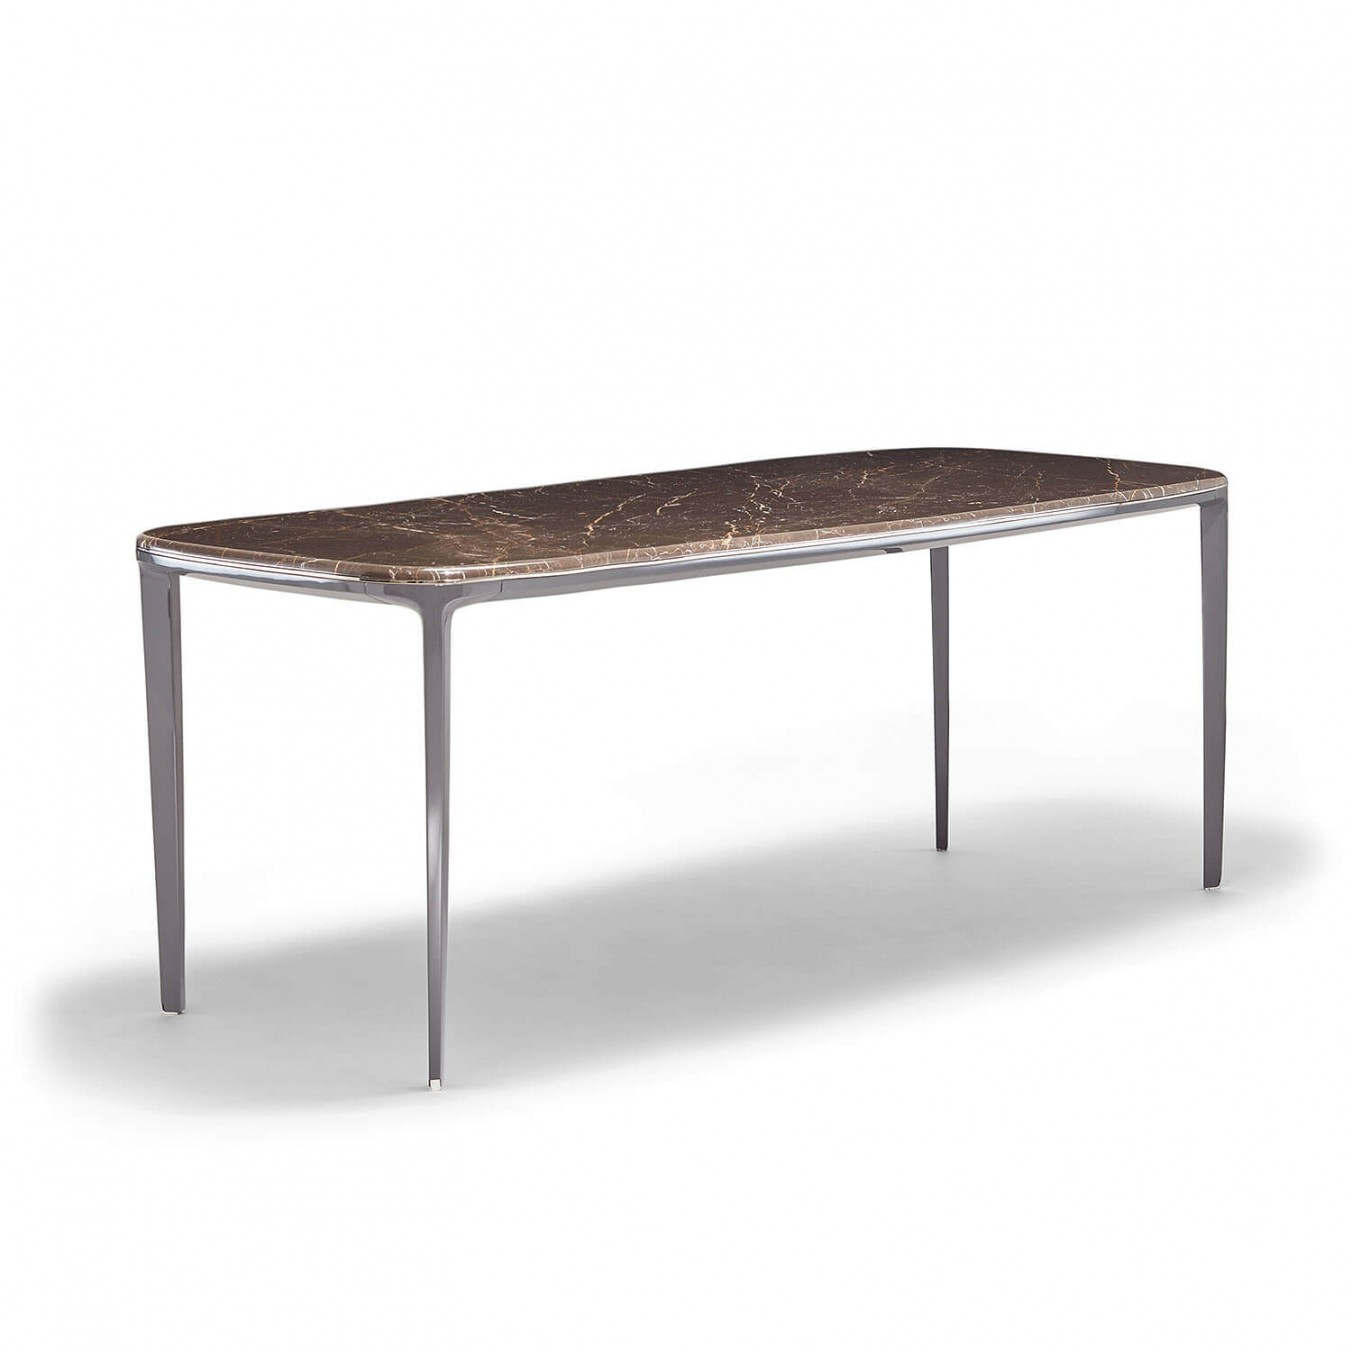 Daedlus Table